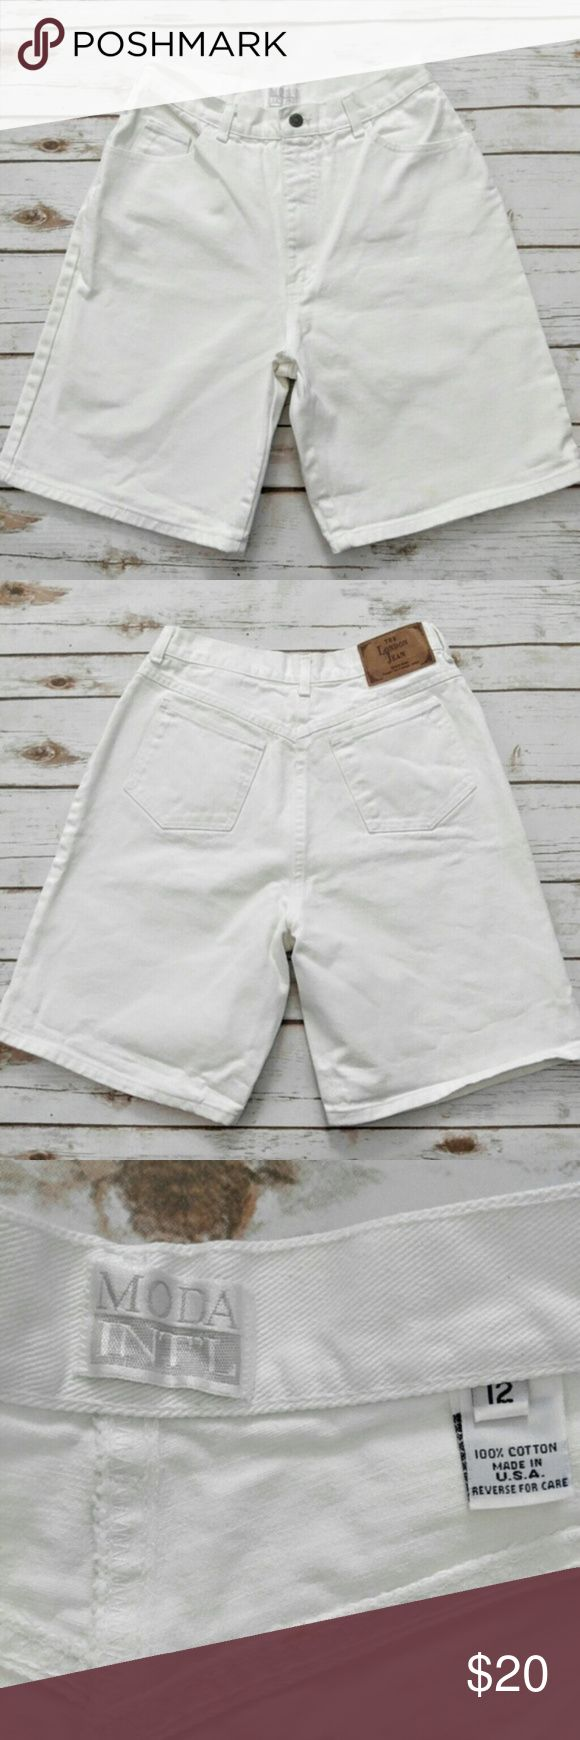 Moda International Vintage London Jean Moda International Vintage London Jean  High Waisted Shorts Perfect crisp white size 12 vintage high waisted shorts. See last photo for measurements. Please let me know if you have any questions. I ship the same day as long as the post office is still open. Have a great day, thanks for checking out my closet and happy poshing! Moda International Shorts Jean Shorts